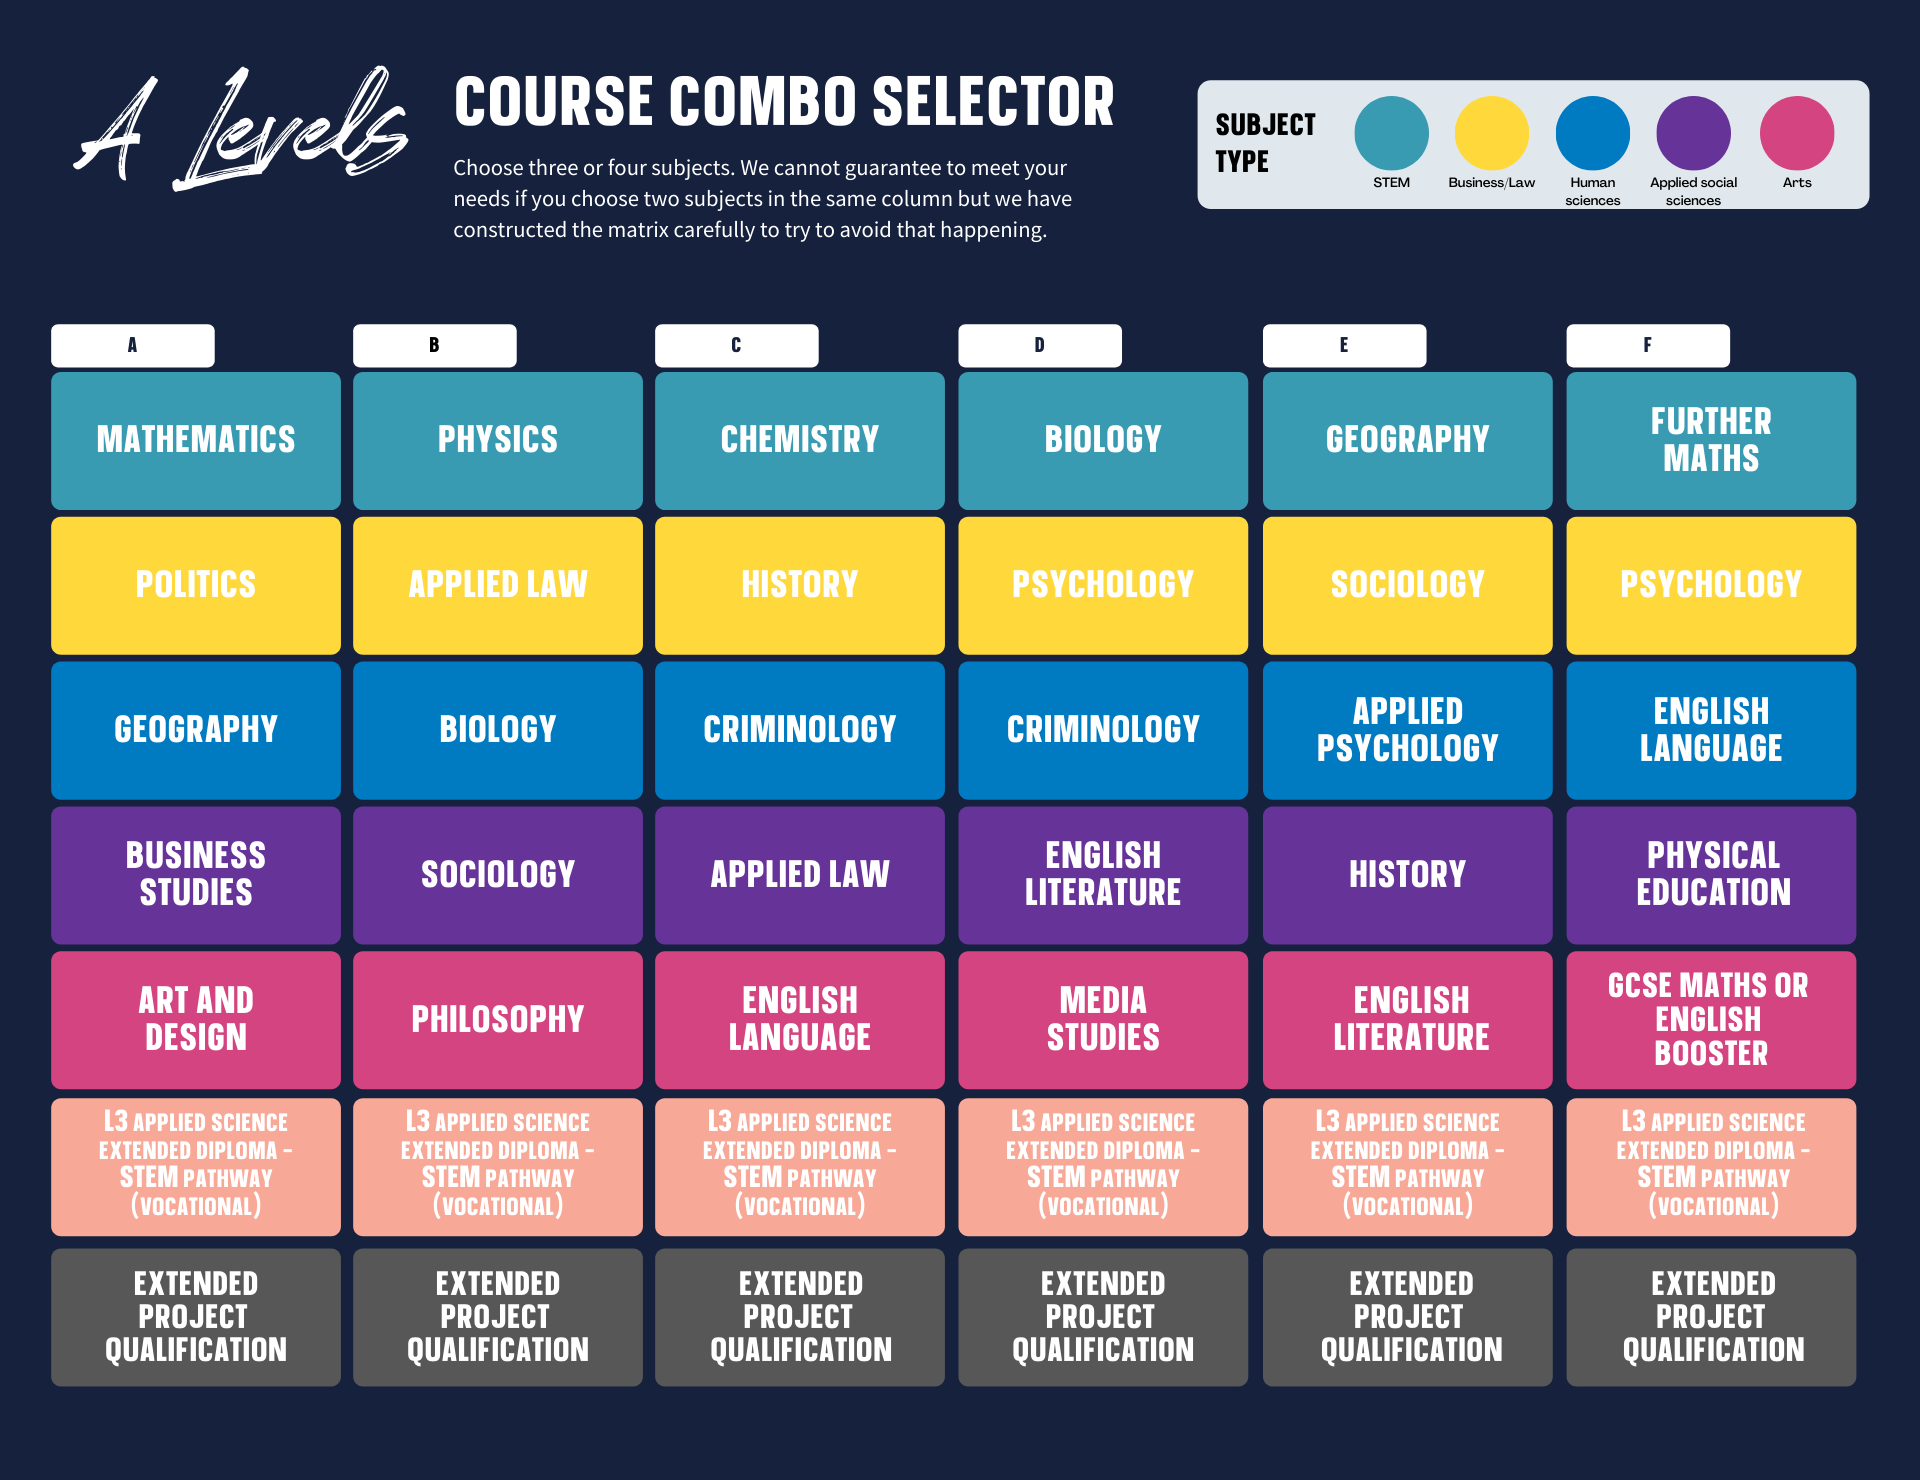 A Level course combo selector table